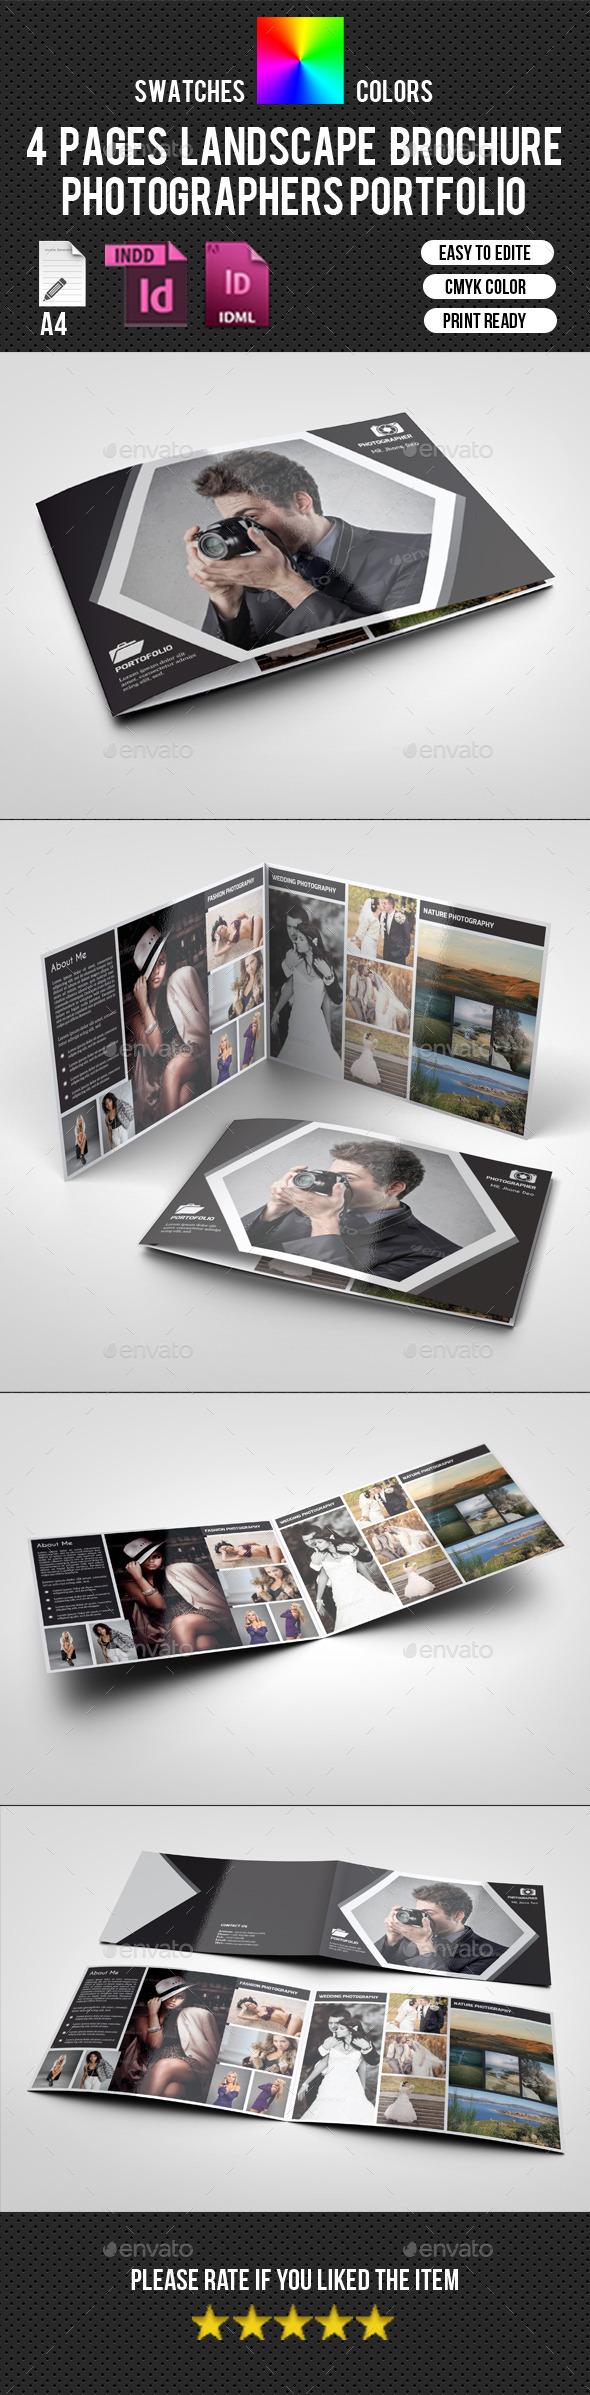 4 Pages Landscape Photography Brochure-V197